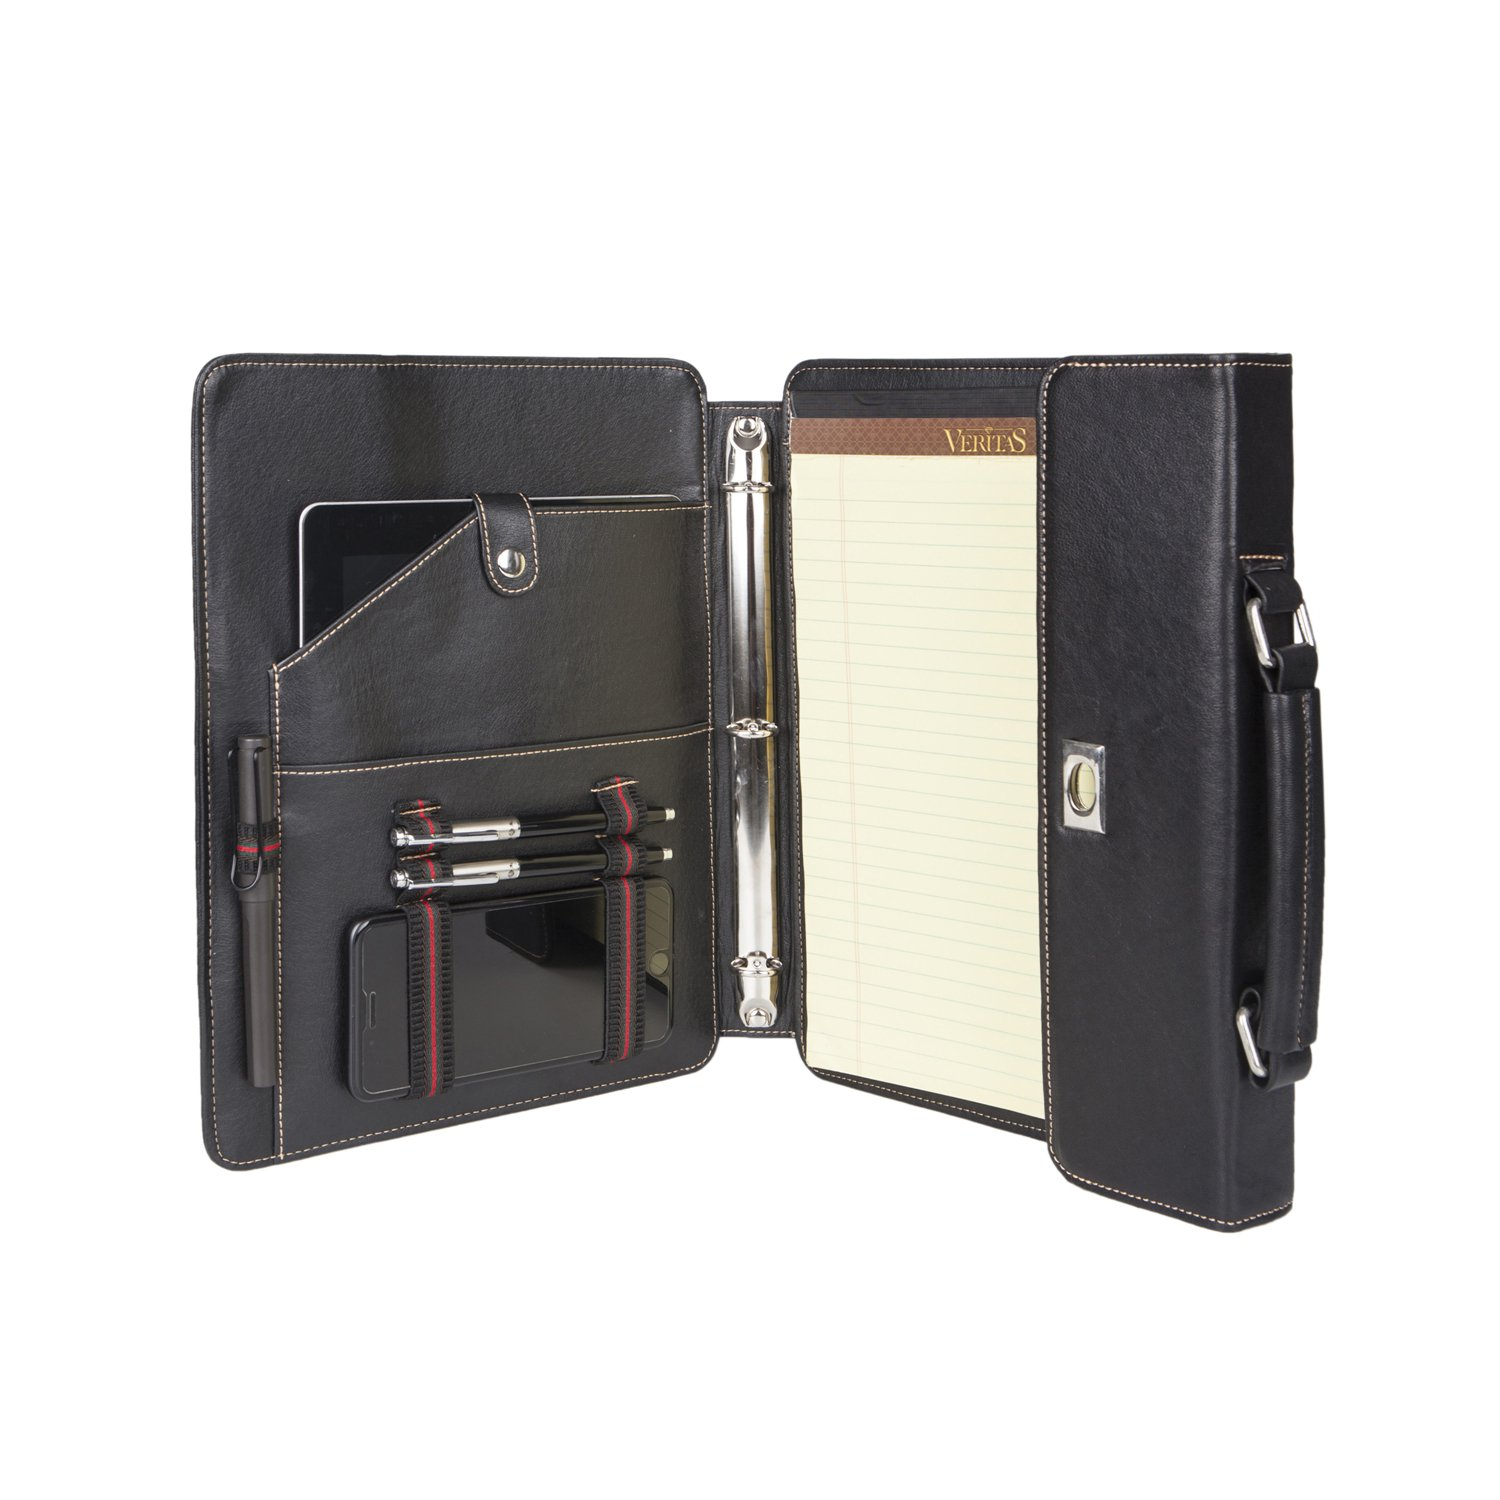 Senior Special Portable Portfolio with Folding Center Panel Genuine Goatskin Leather Multi-function Portable bag for iPad